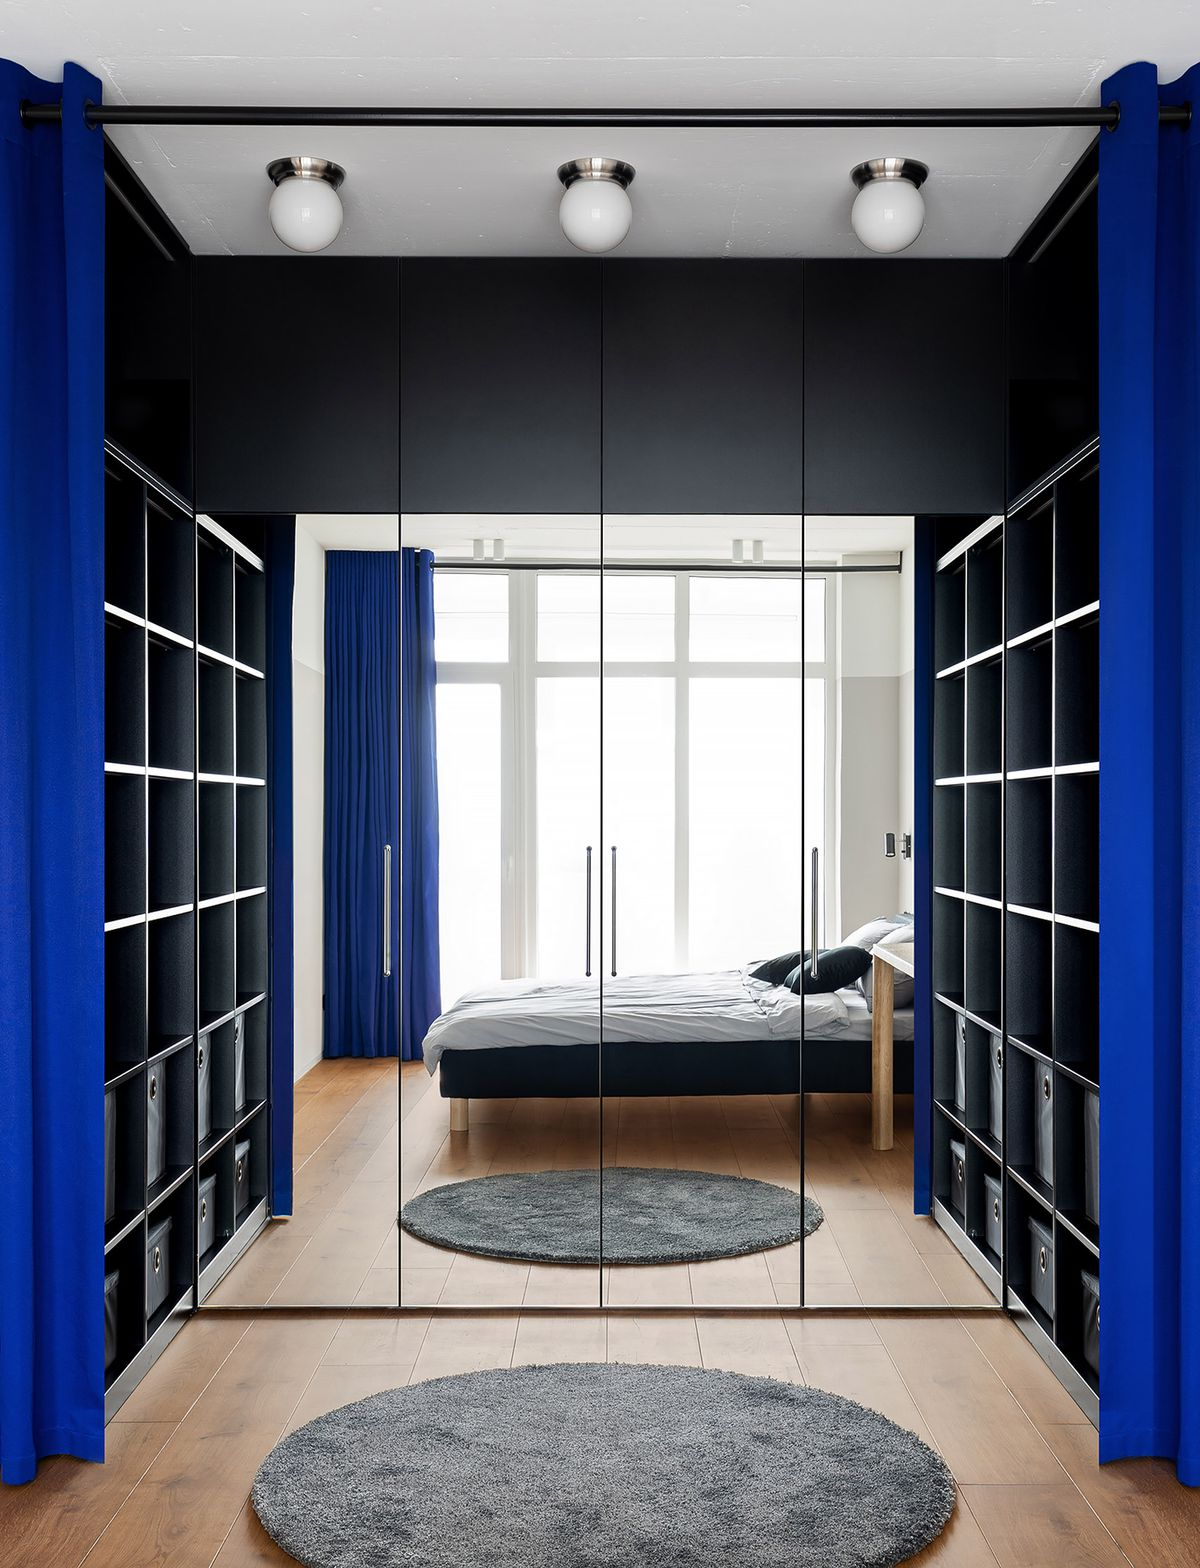 Wardrobe surrounded by blue curtains.